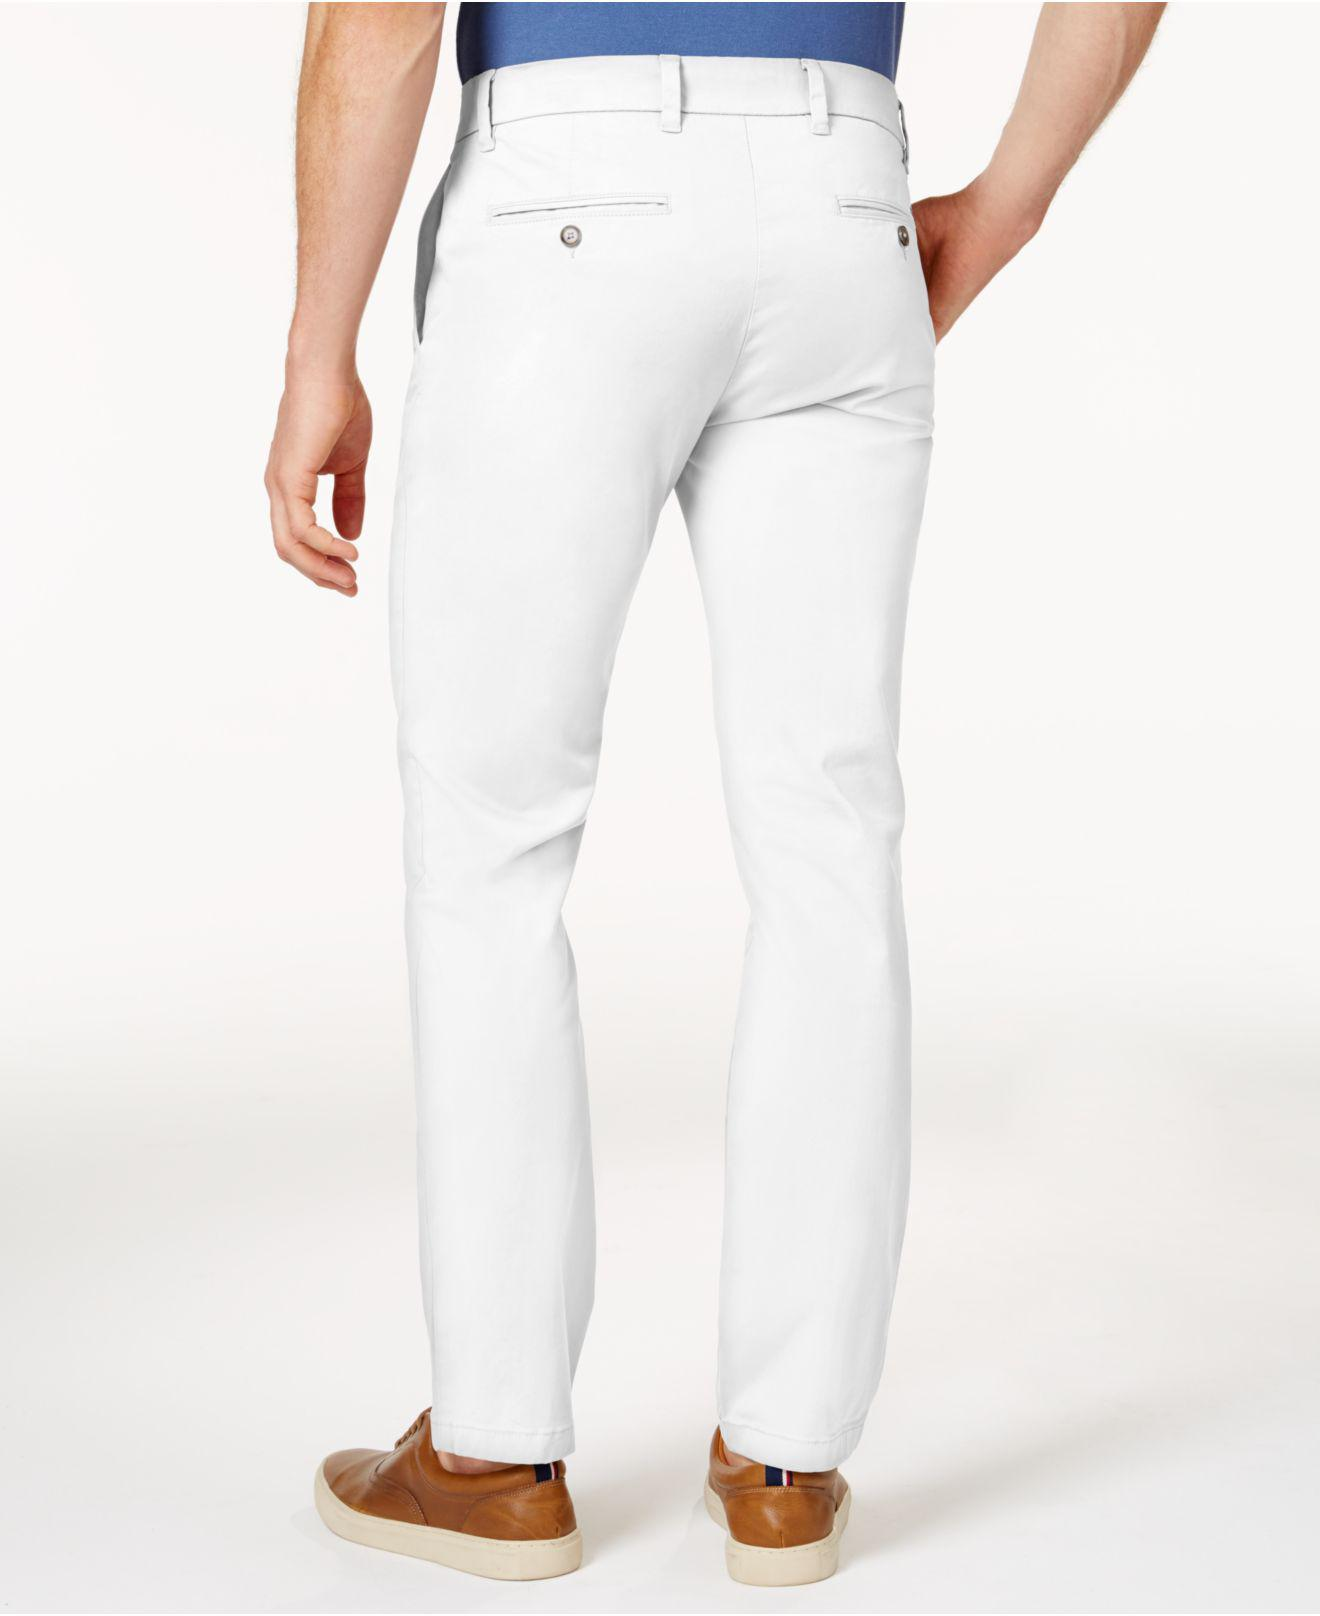 1eadb50cea Tommy Hilfiger Slim-fit Stretch Chino Pants in White for Men - Lyst